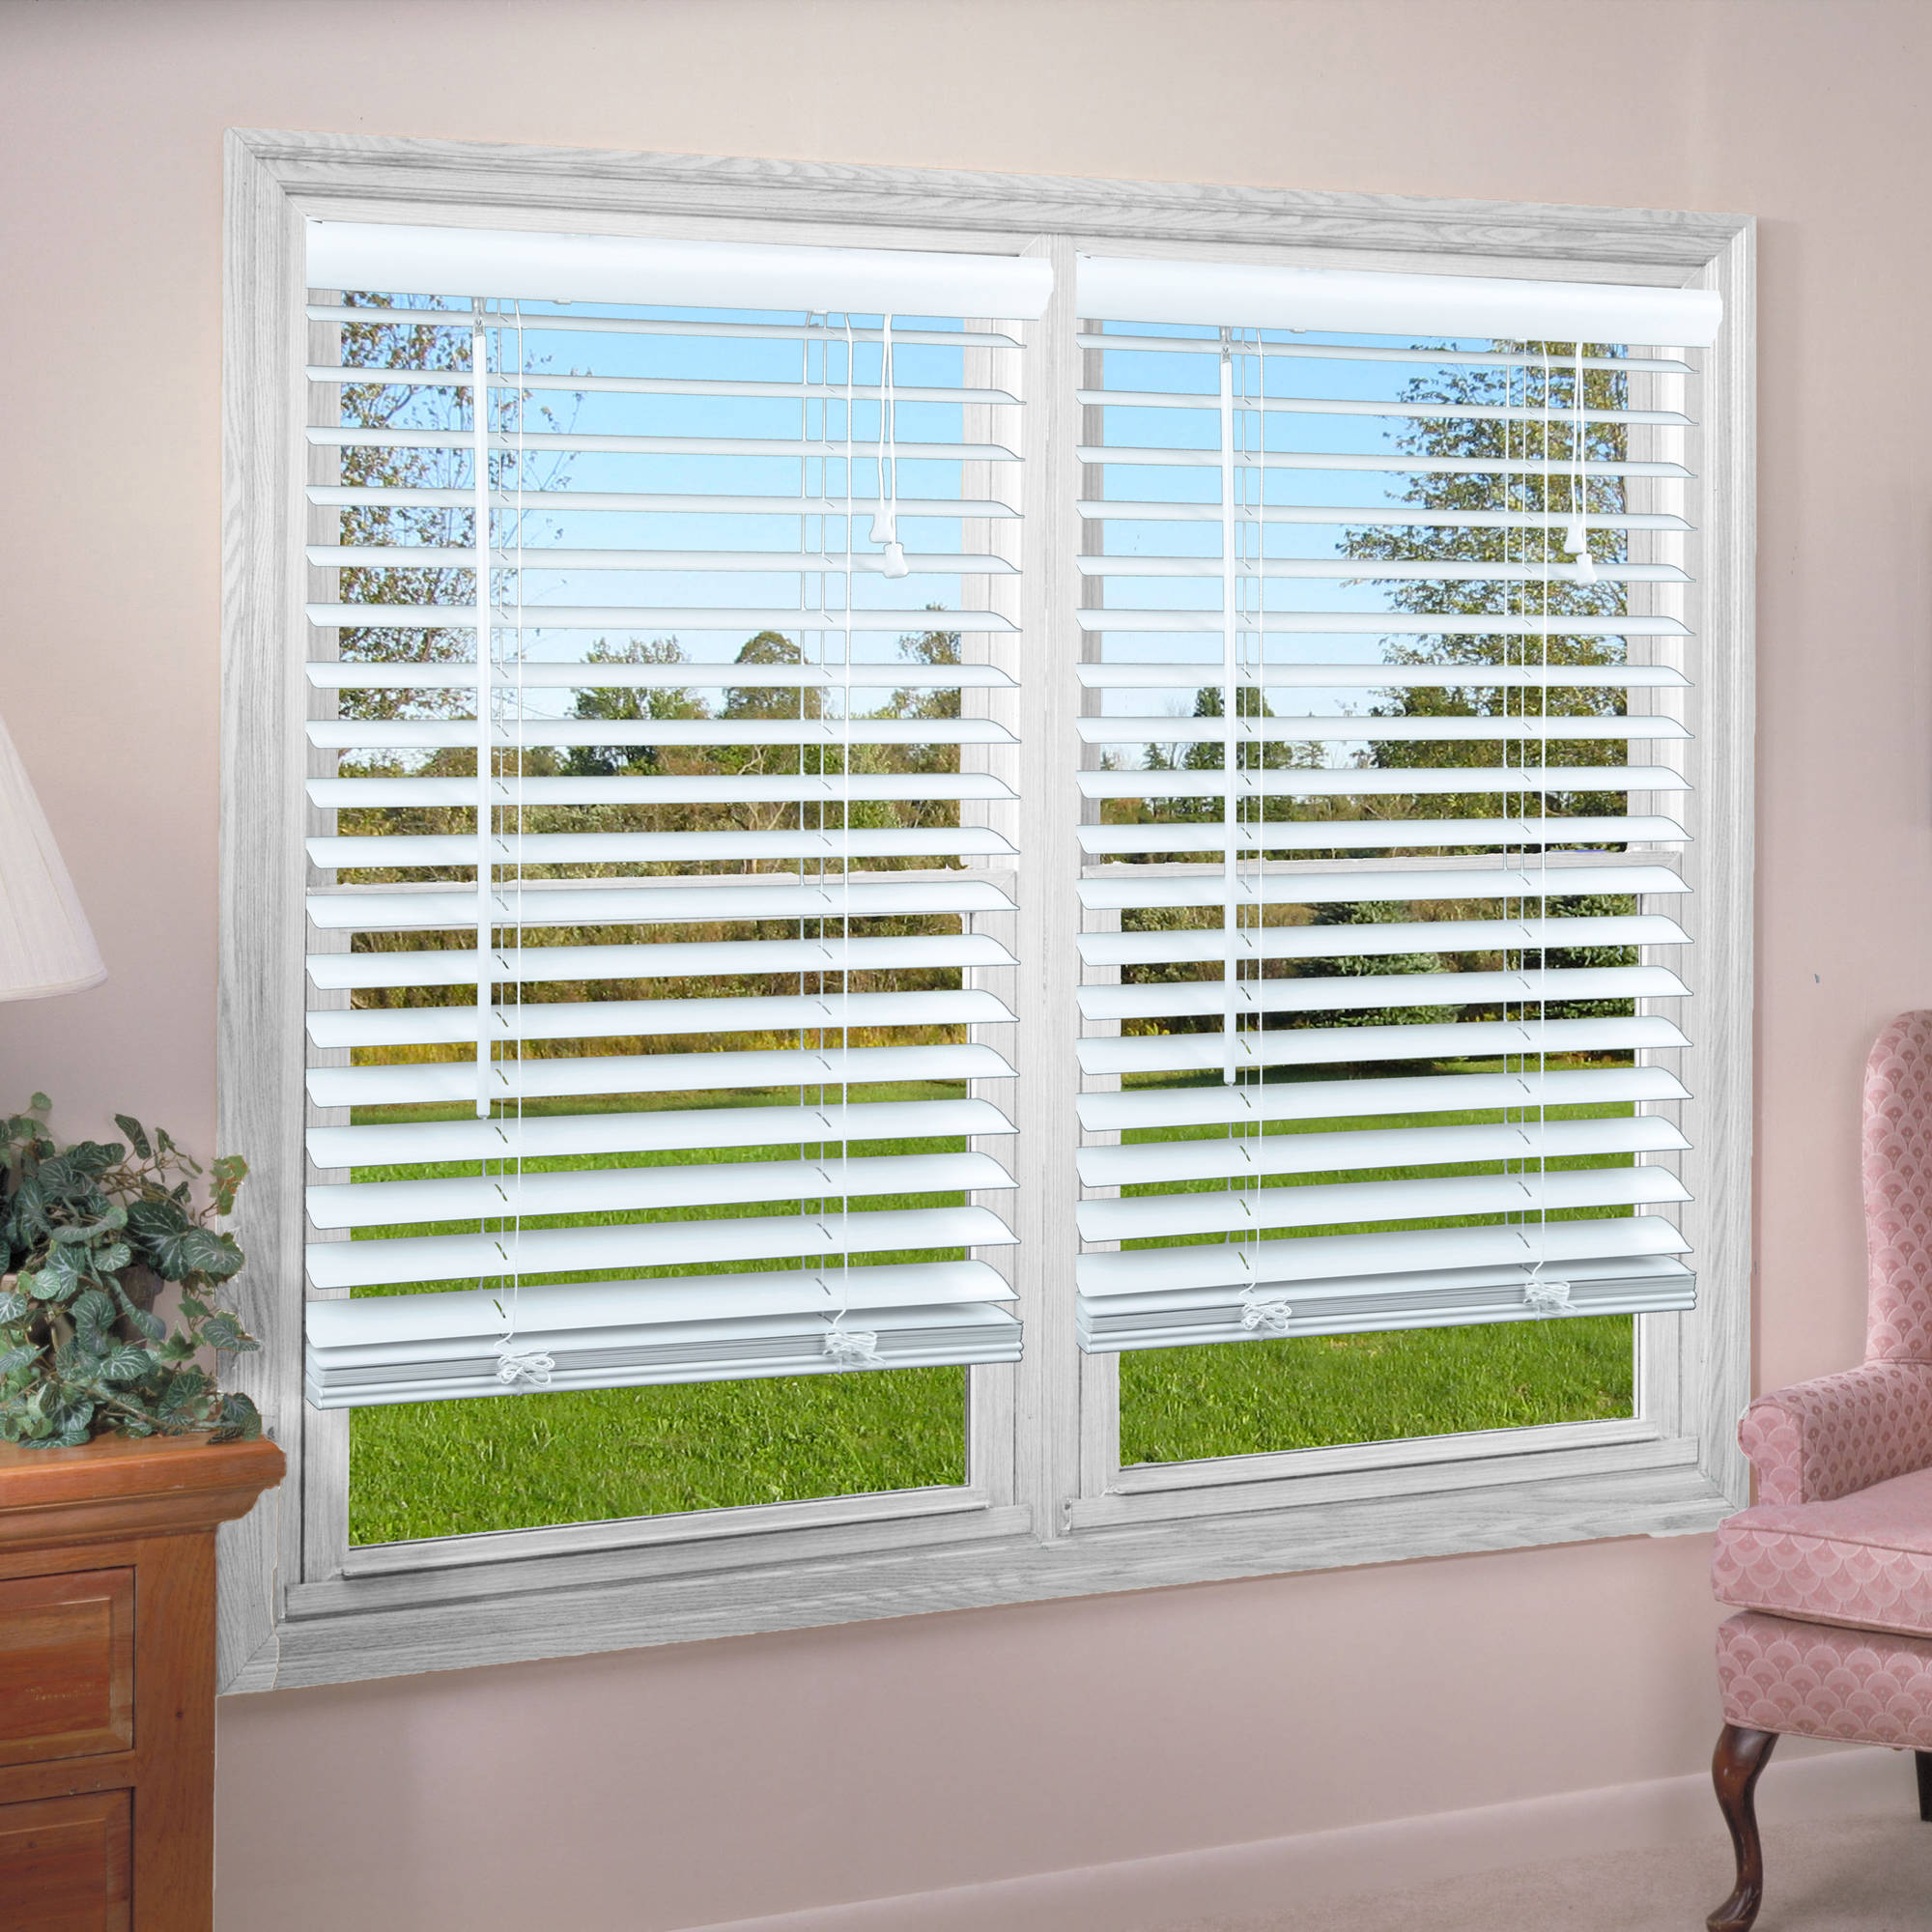 throughout frozenberry wood blinds with shades design mini interior up image window of darkening walmart decor lowes room dress your charming in honeycomb